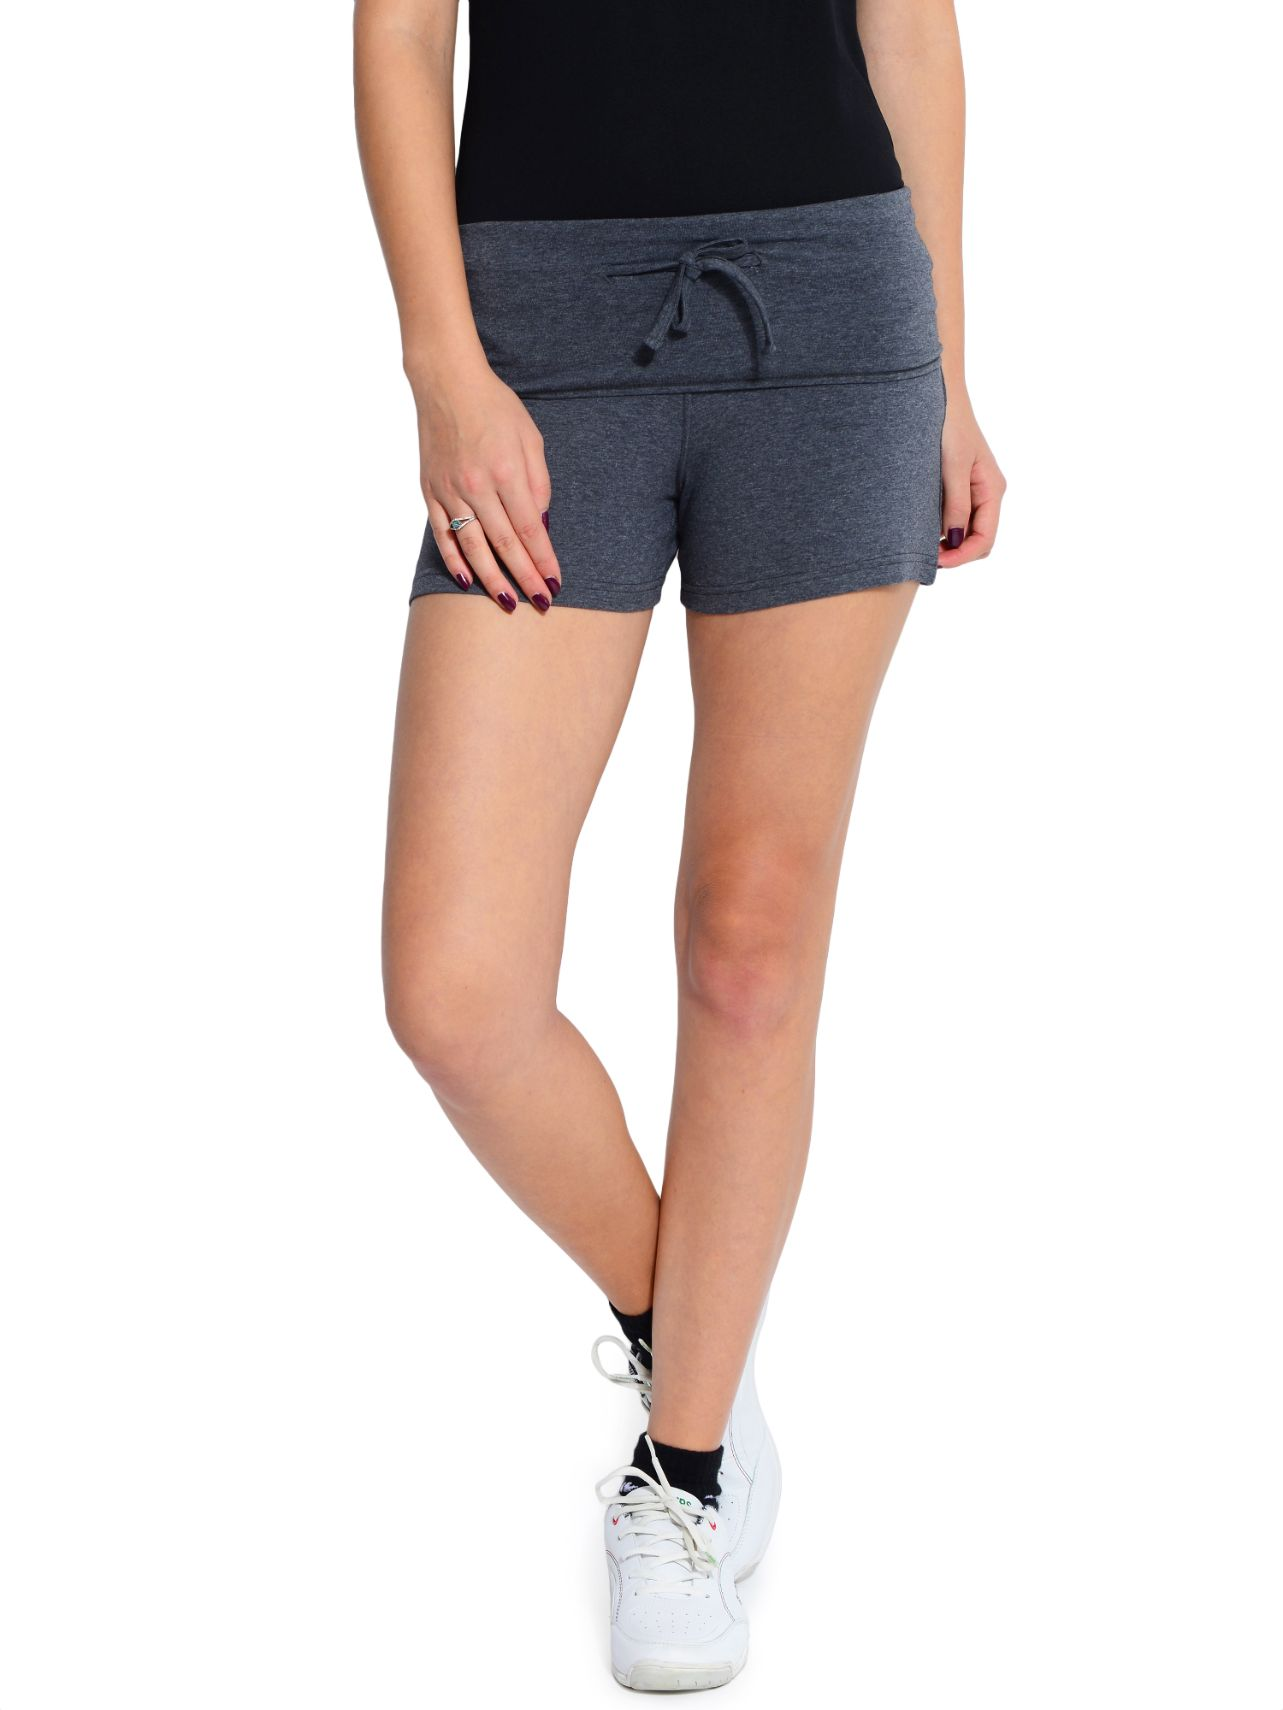 ATIVO Solid Women's Grey Sports Shorts